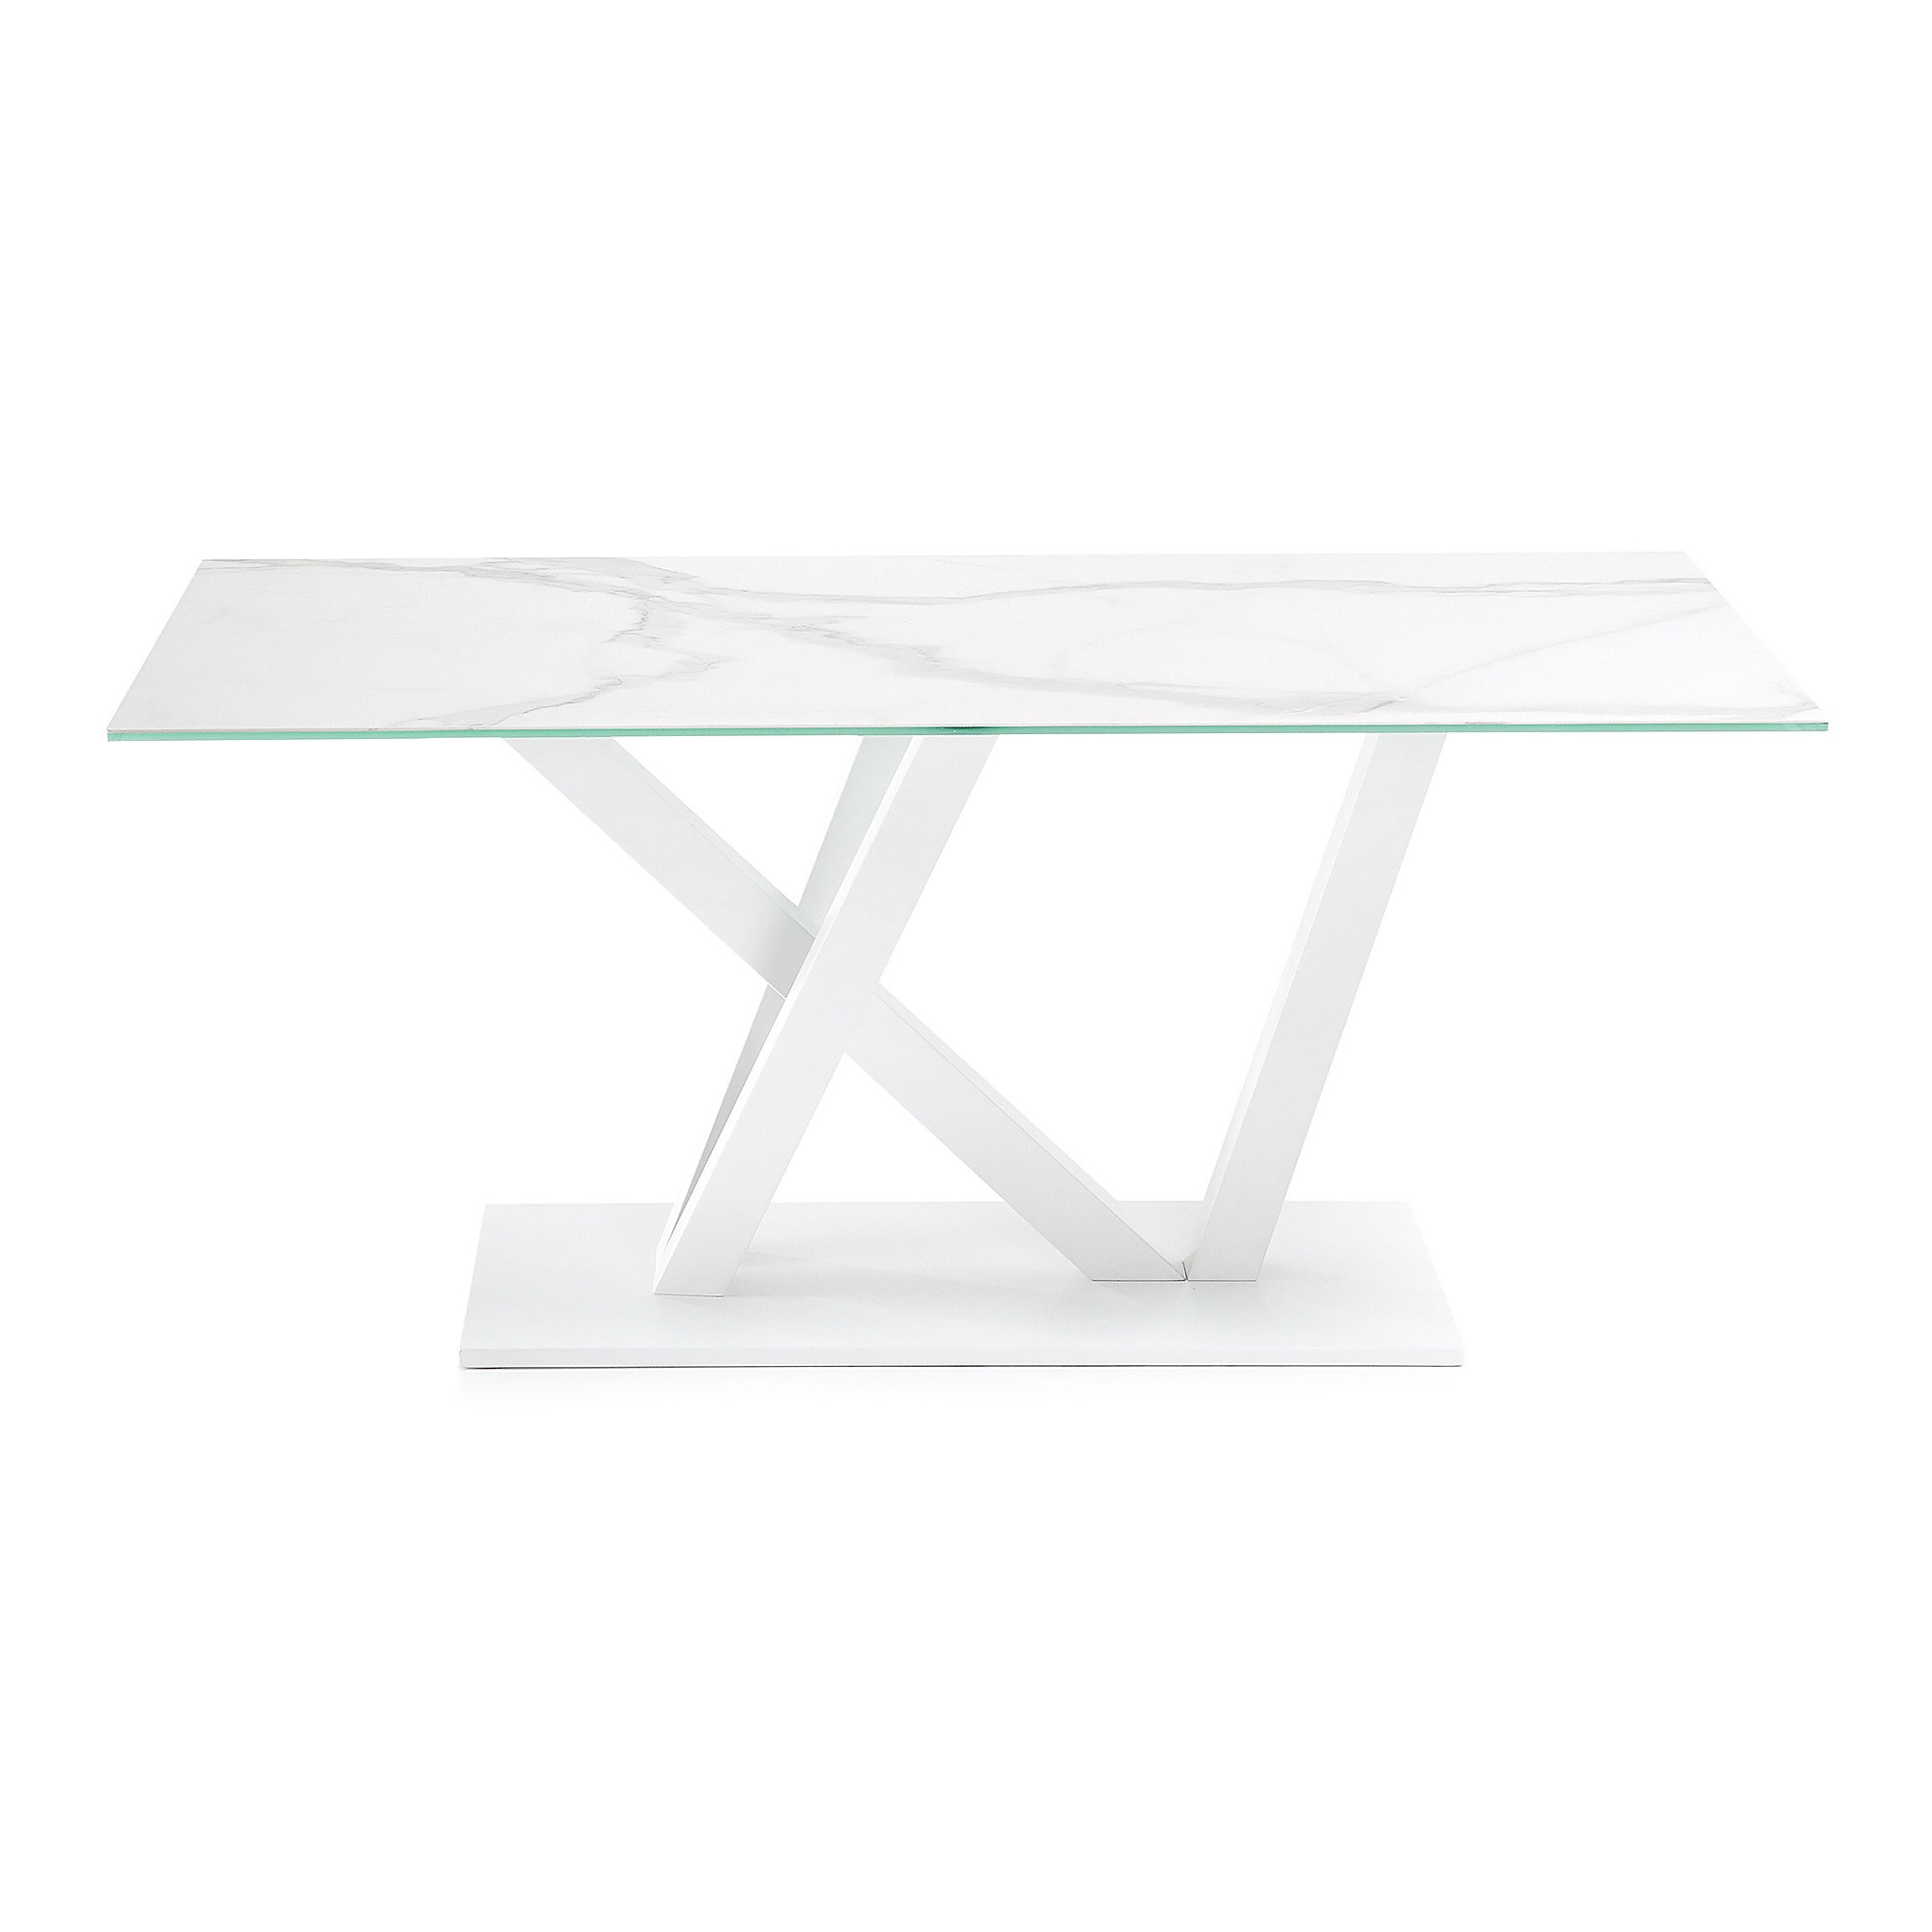 Uzi Ceramic Glass & Epoxy Steel Dining Table, 180cm, Kalos Blanco / White